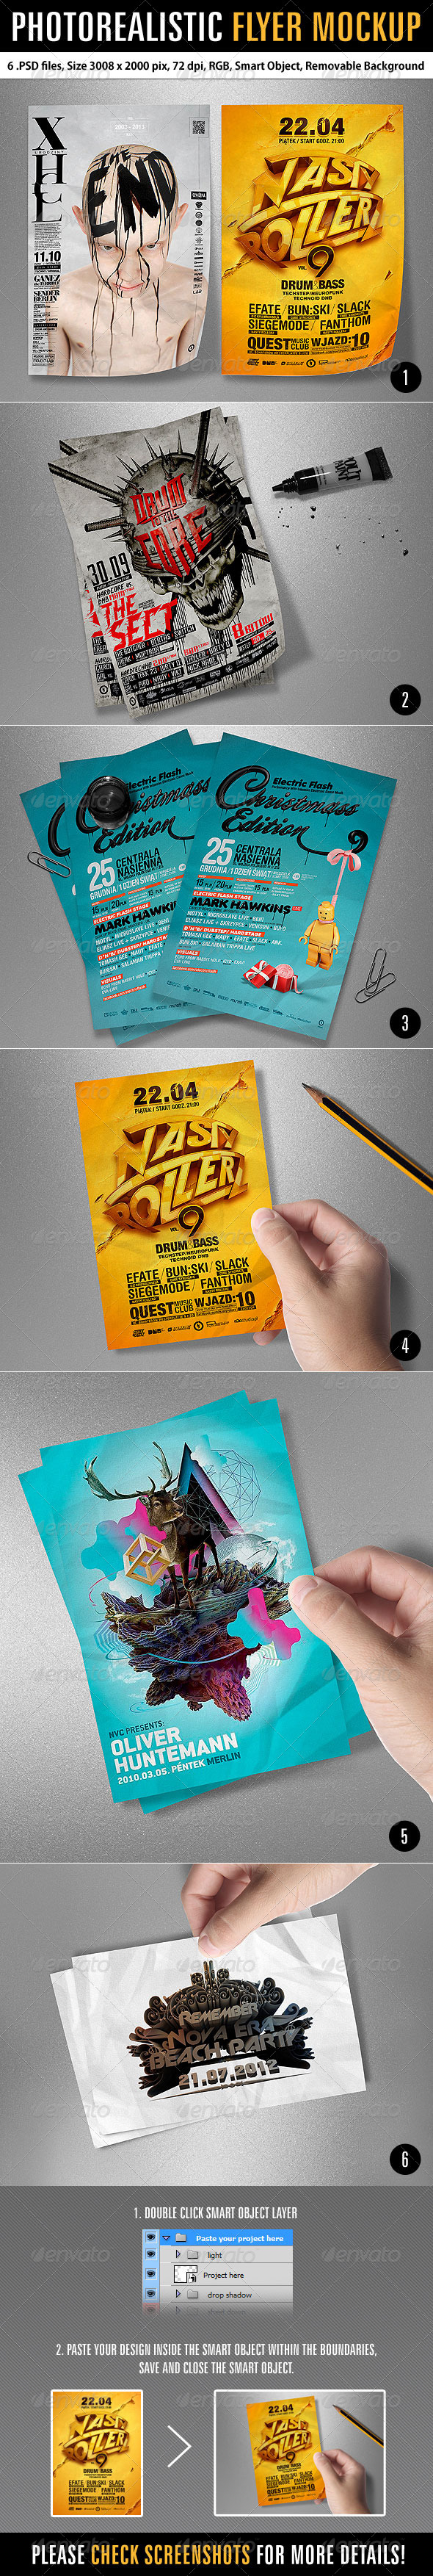 GraphicRiver Photorealistic Flyer Mockup 6268981